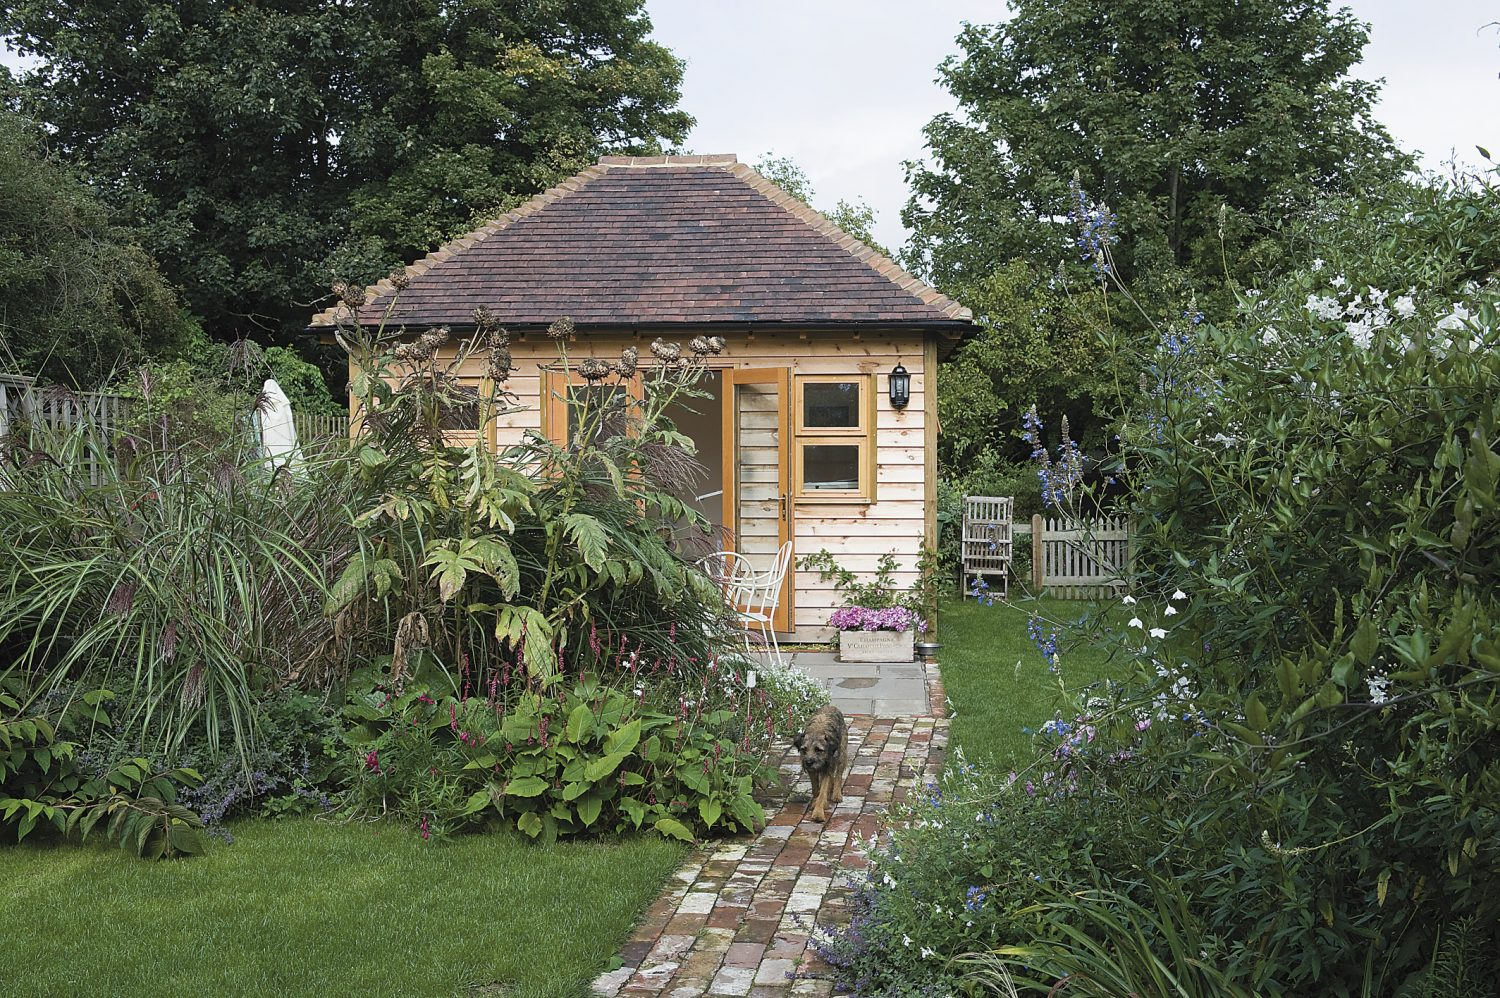 At the end of the garden is Kate's pride and joy: a garden office which she designed and had hand built. Inside, her drawing board has sketches and planting lists for gardens that she is currently working on...